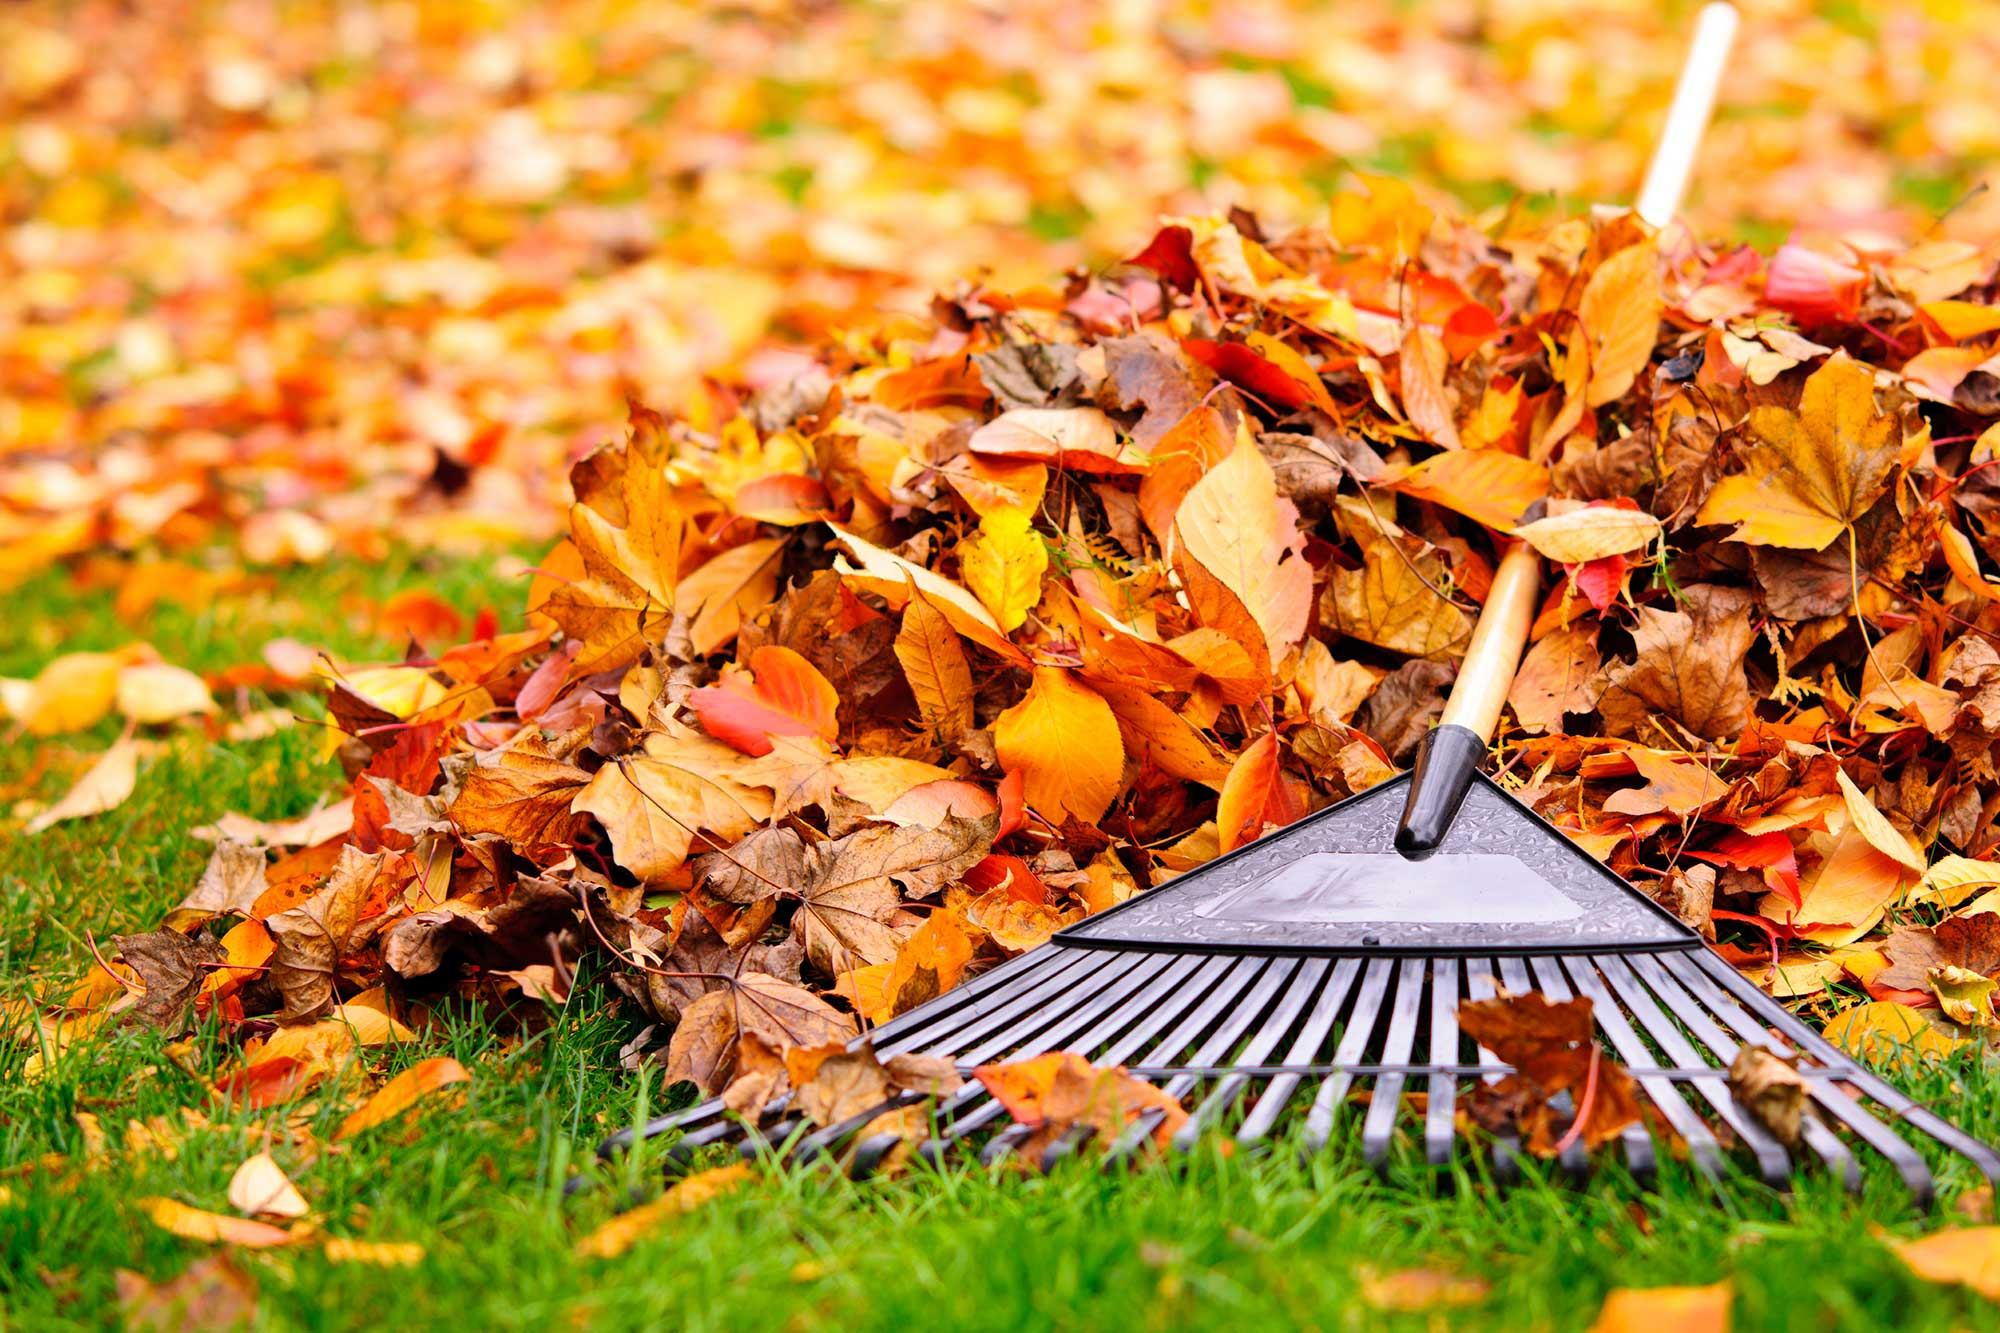 It's that time of year to start scheduling your Fall Cleanups, Aeration and Power Raking! Give us a call at 708-598-8630 to schedule an appointment.